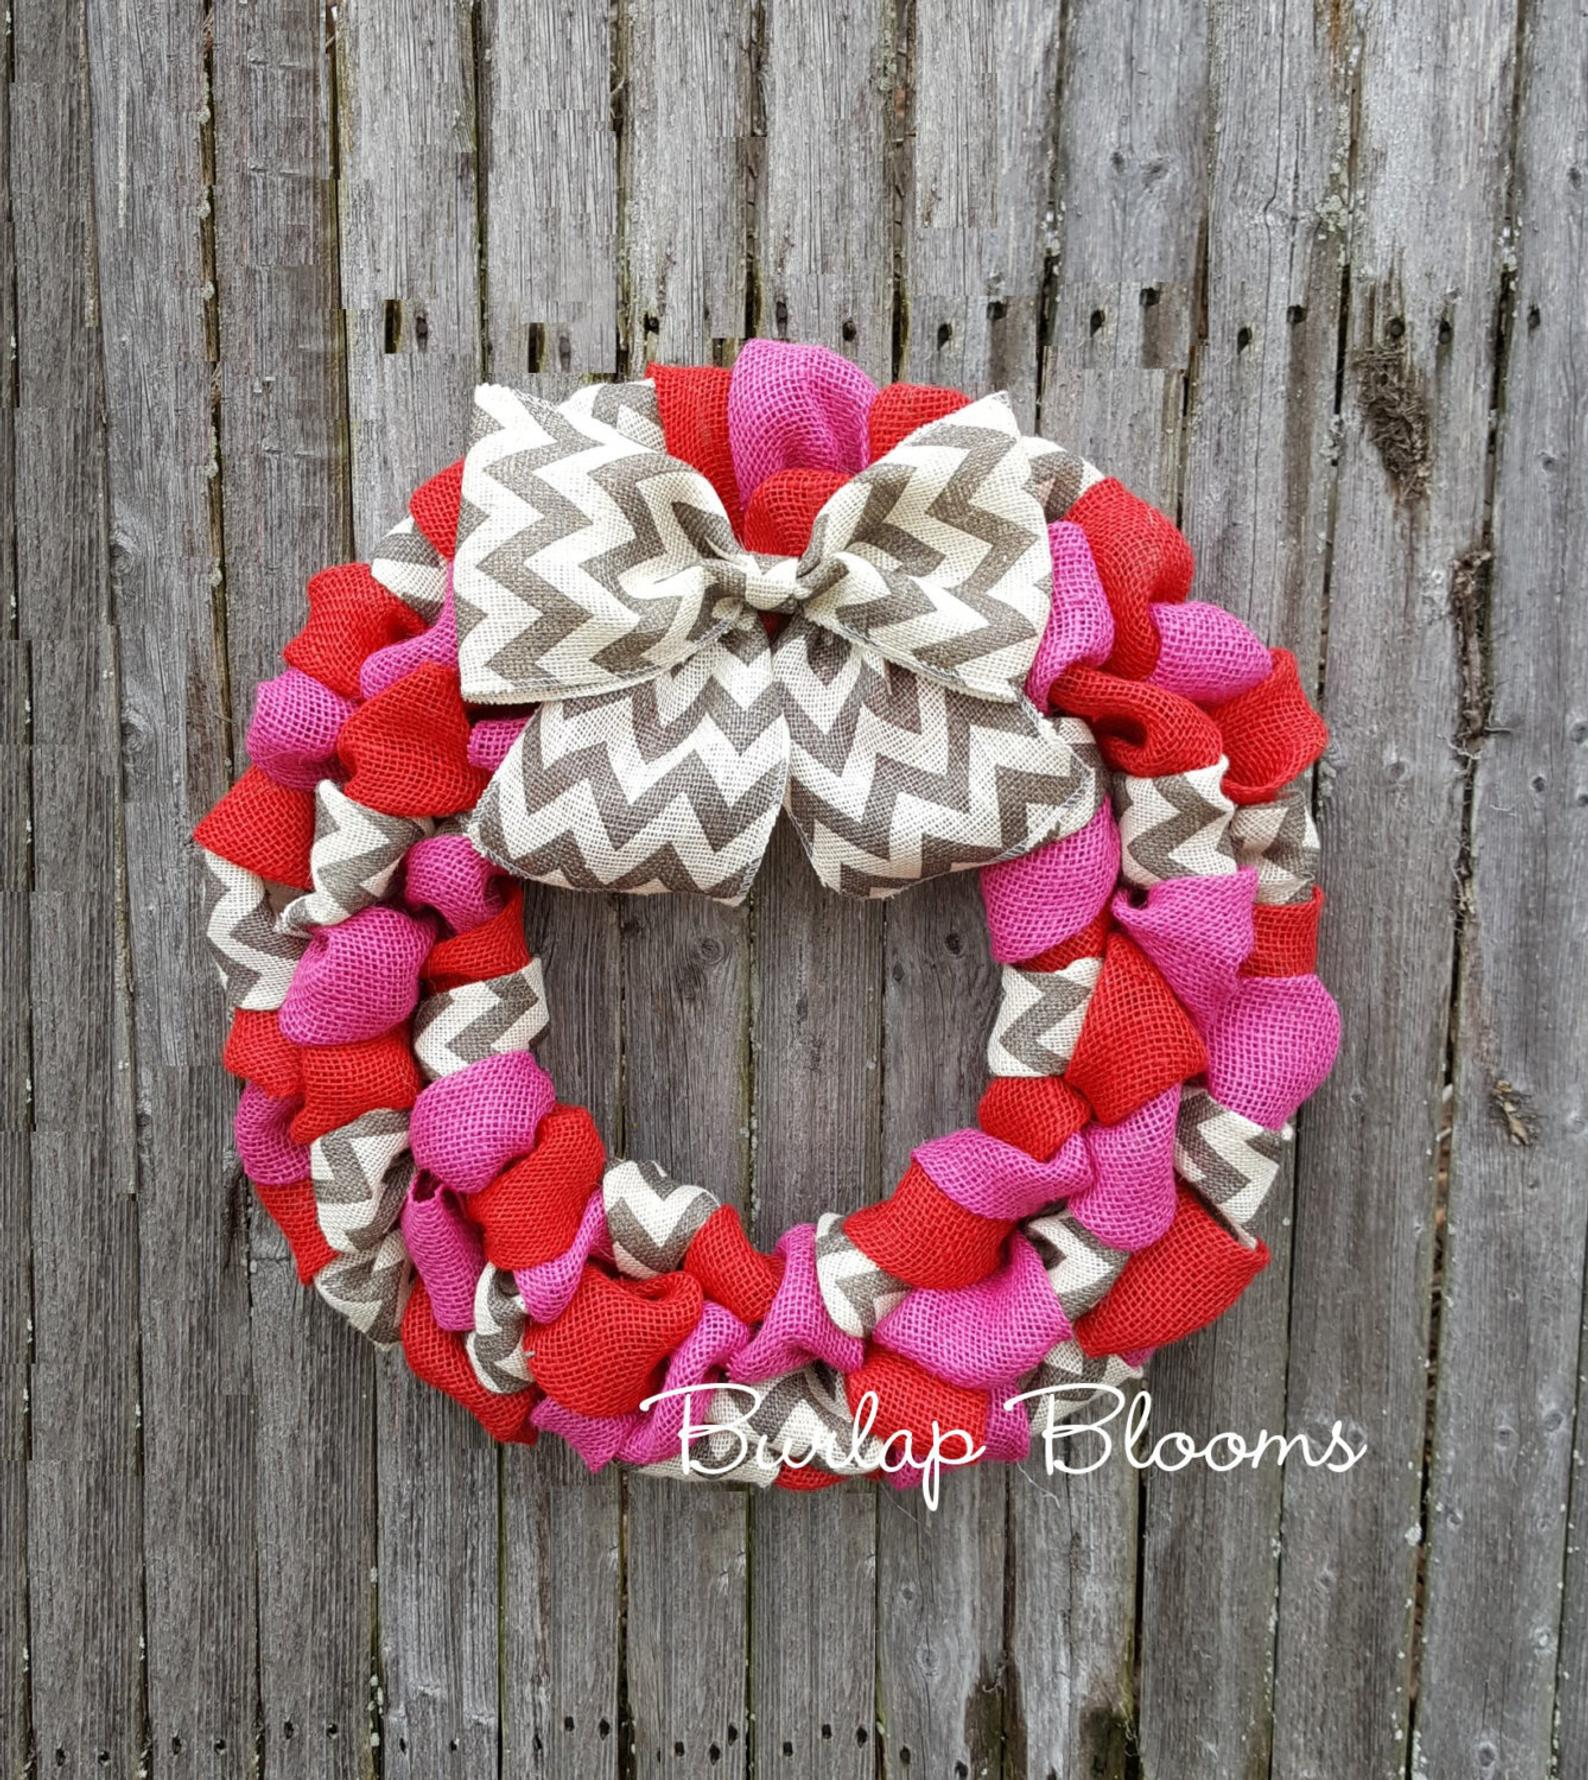 Red and pink Valentine's Day wreath with burlap